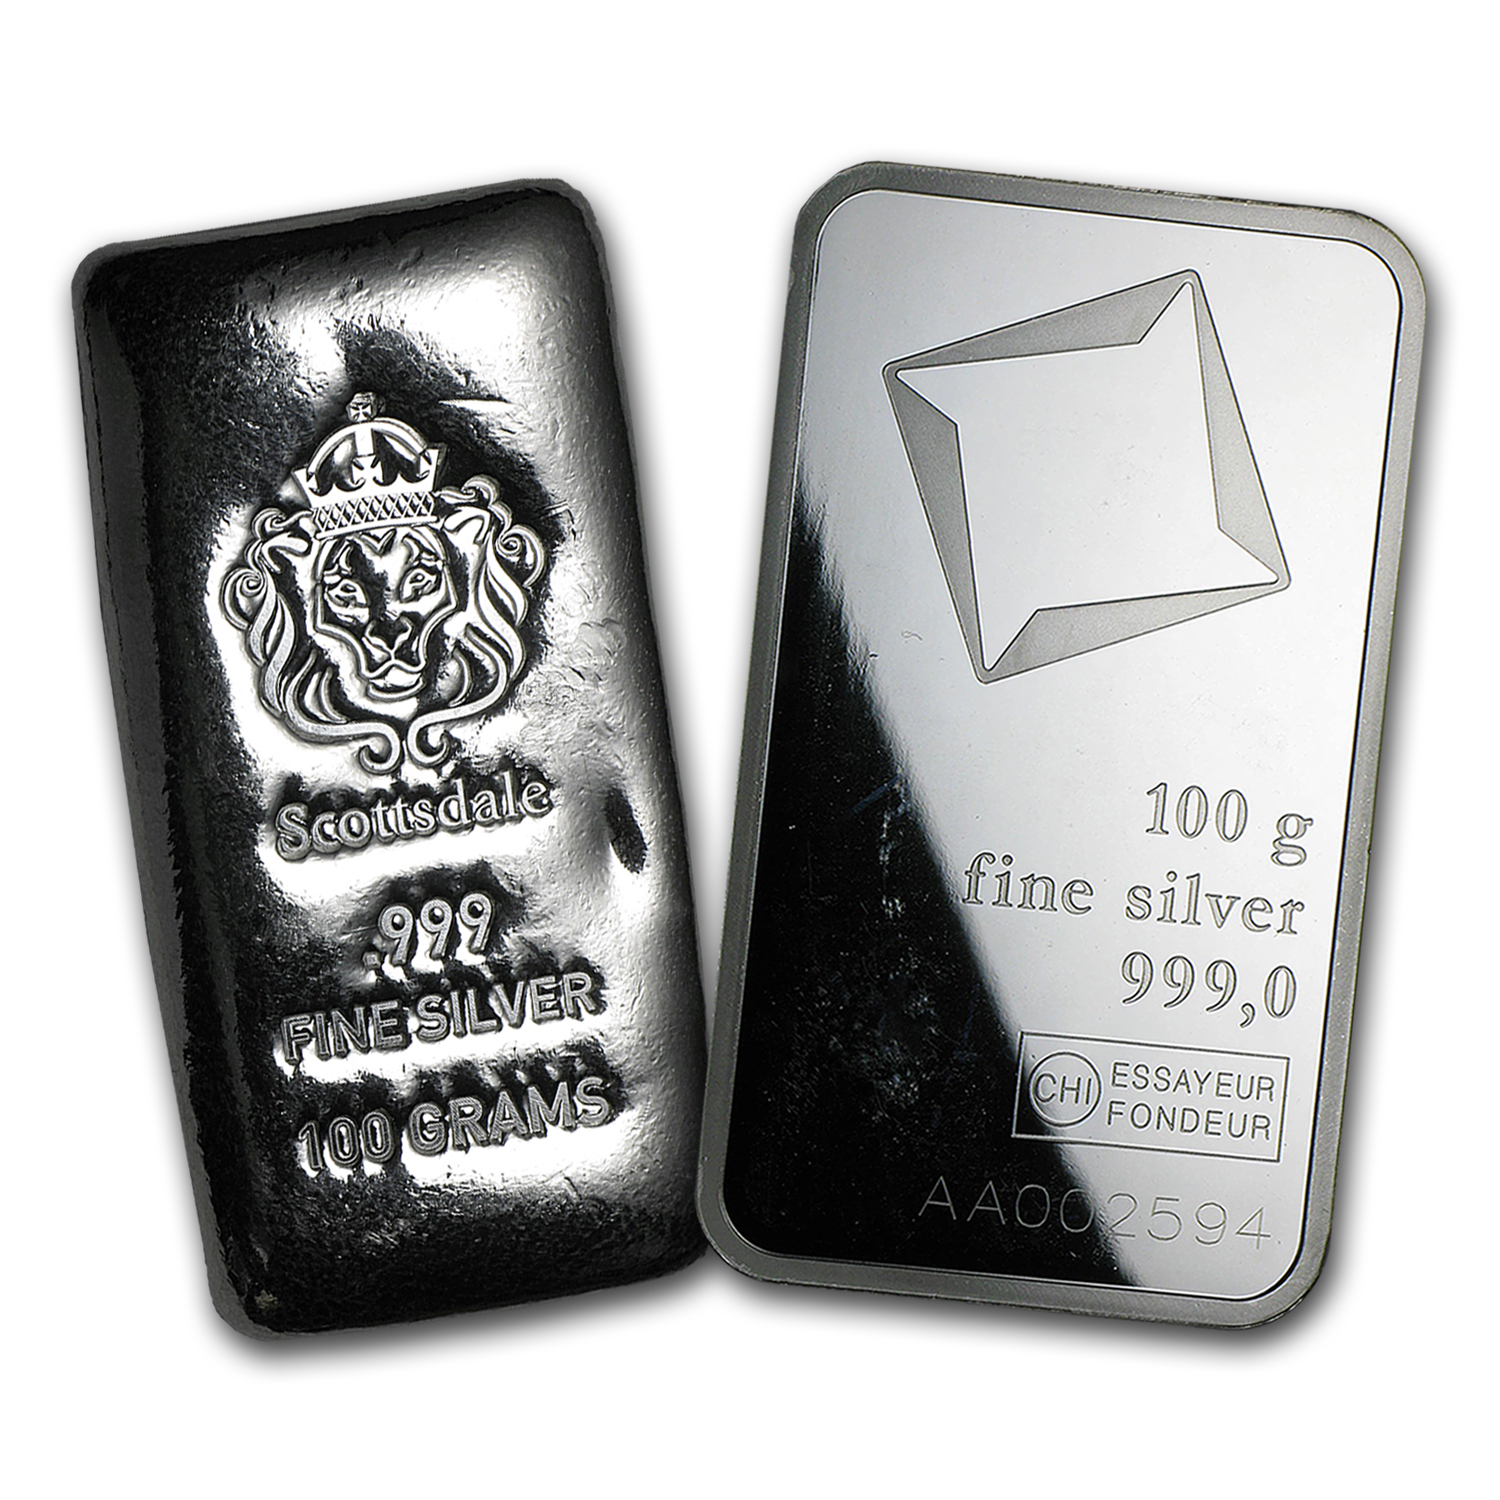 100 gram Silver Bar - Secondary Market